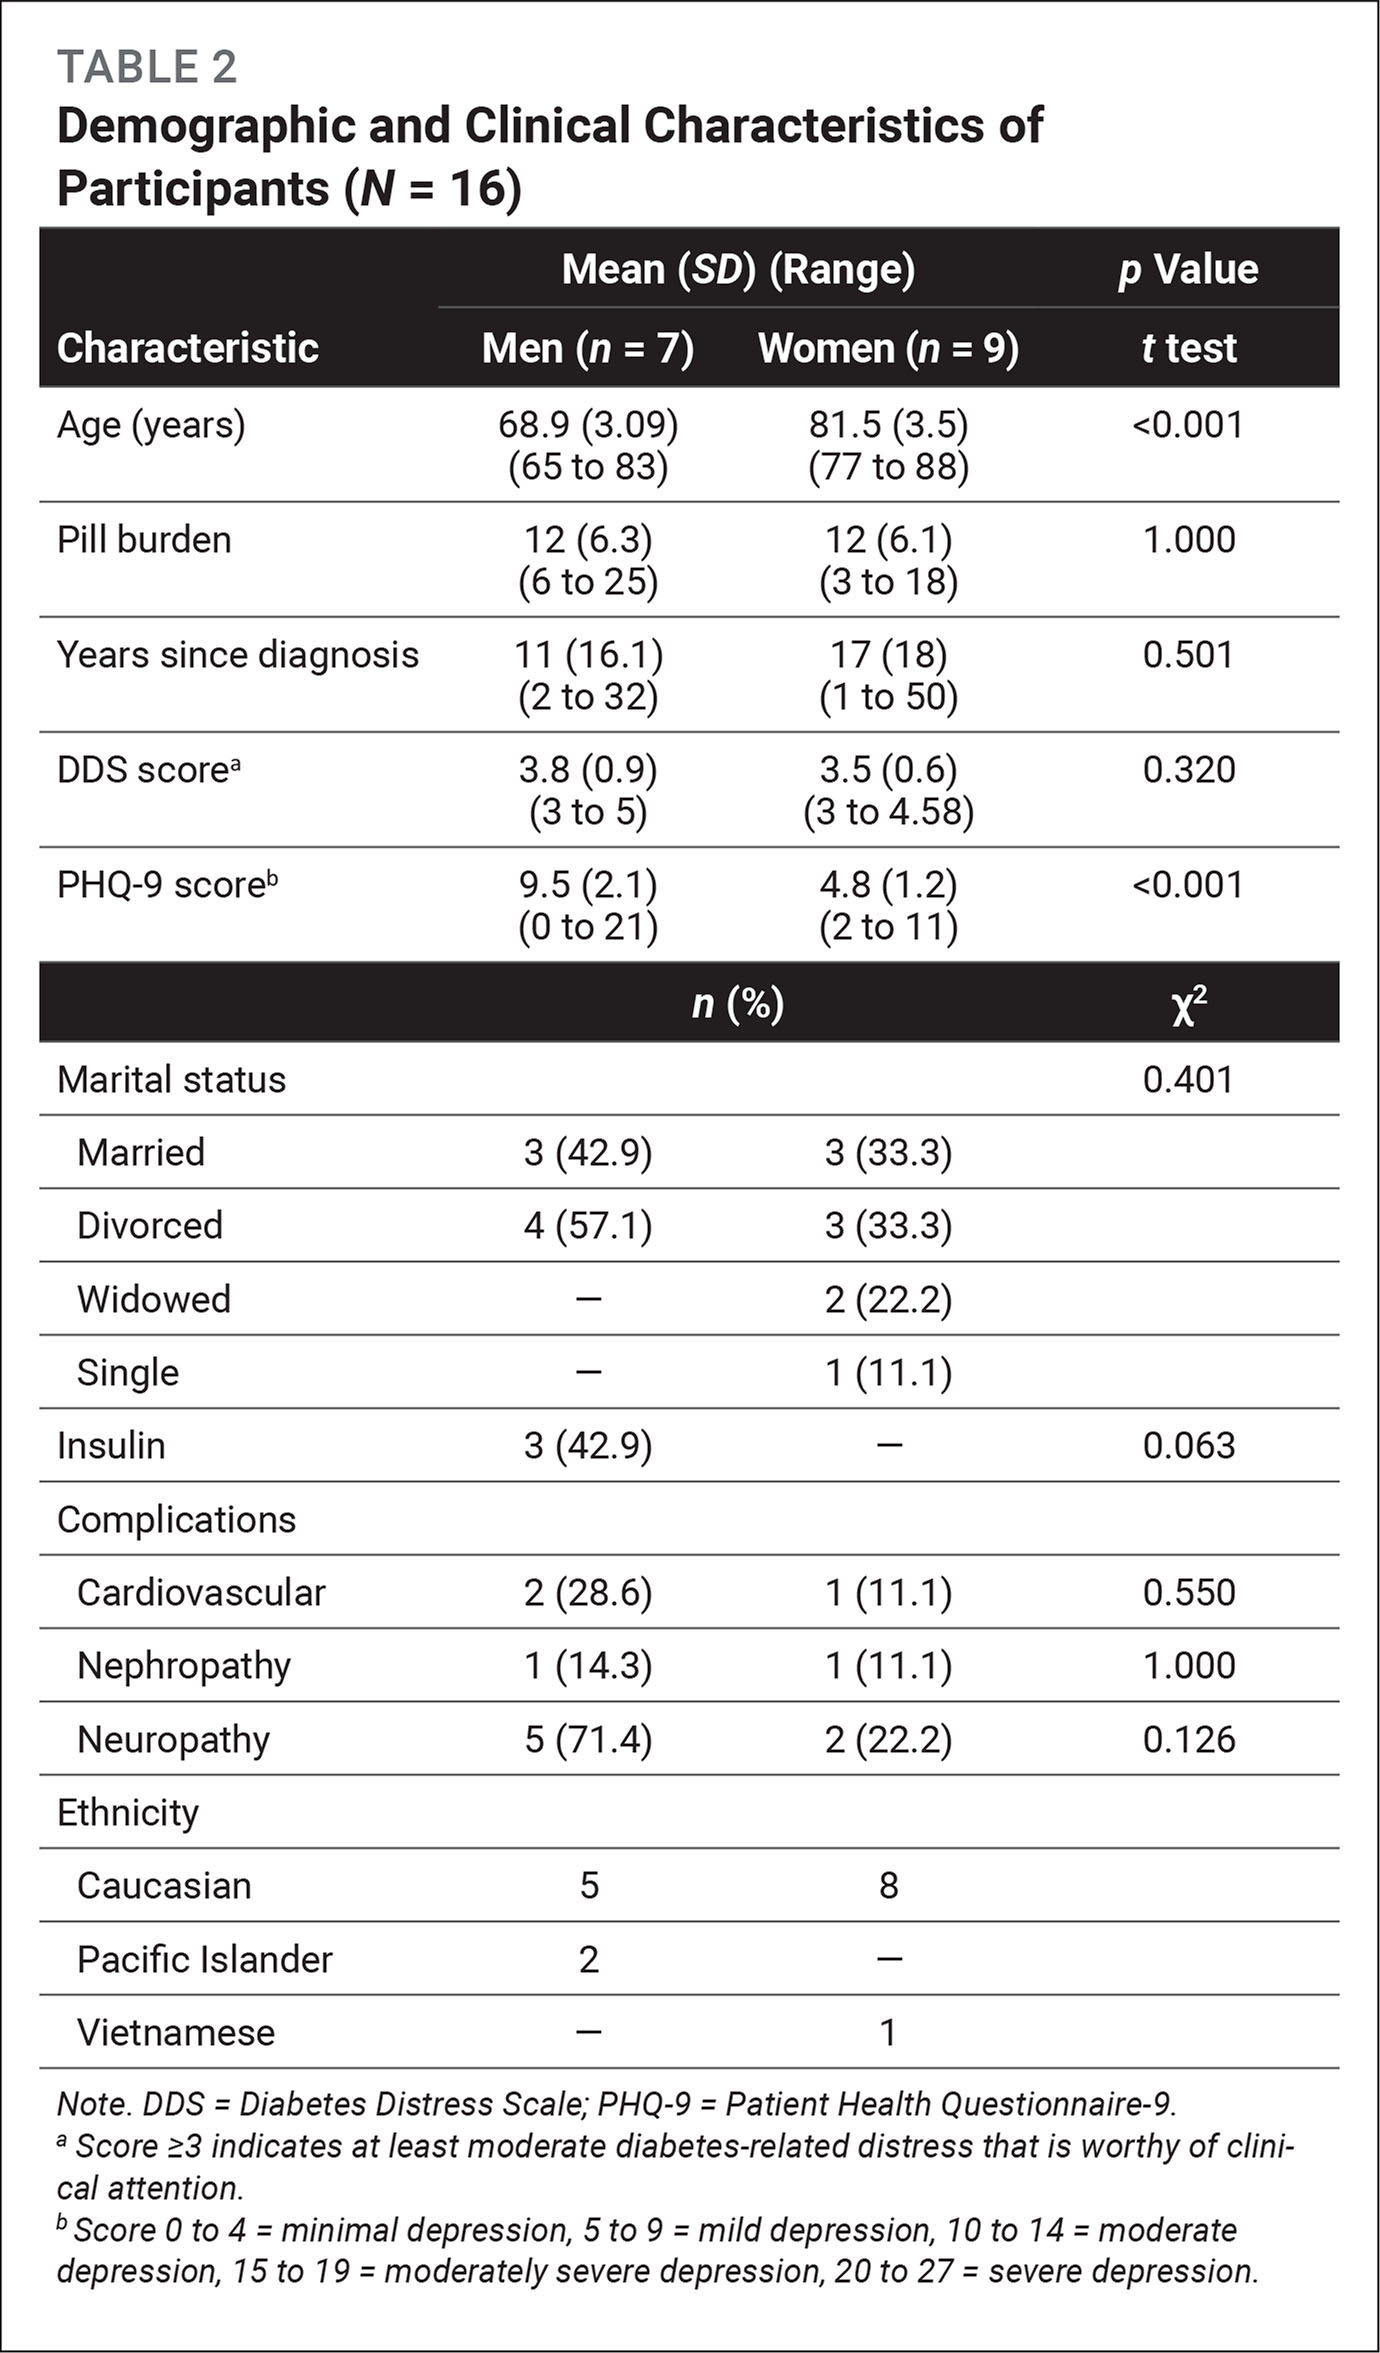 Demographic and Clinical Characteristics of Participants (N = 16)